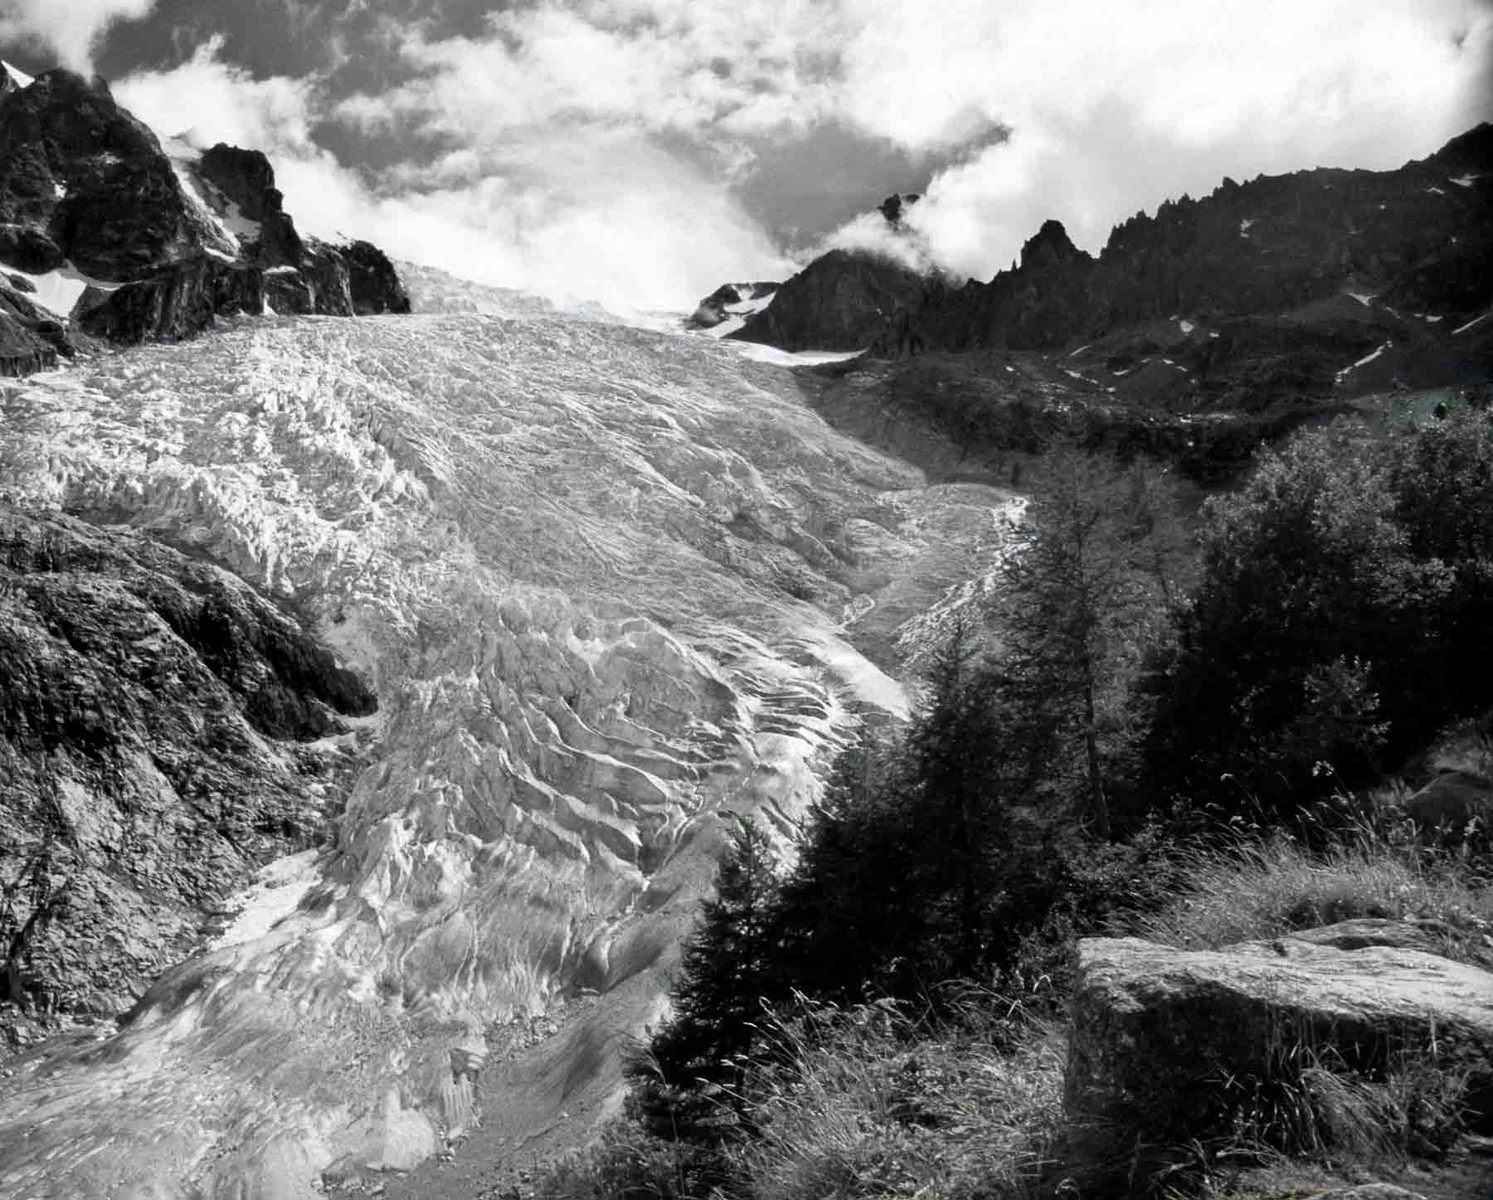 A Haute Route image with a mountain glacier cascading into a valley